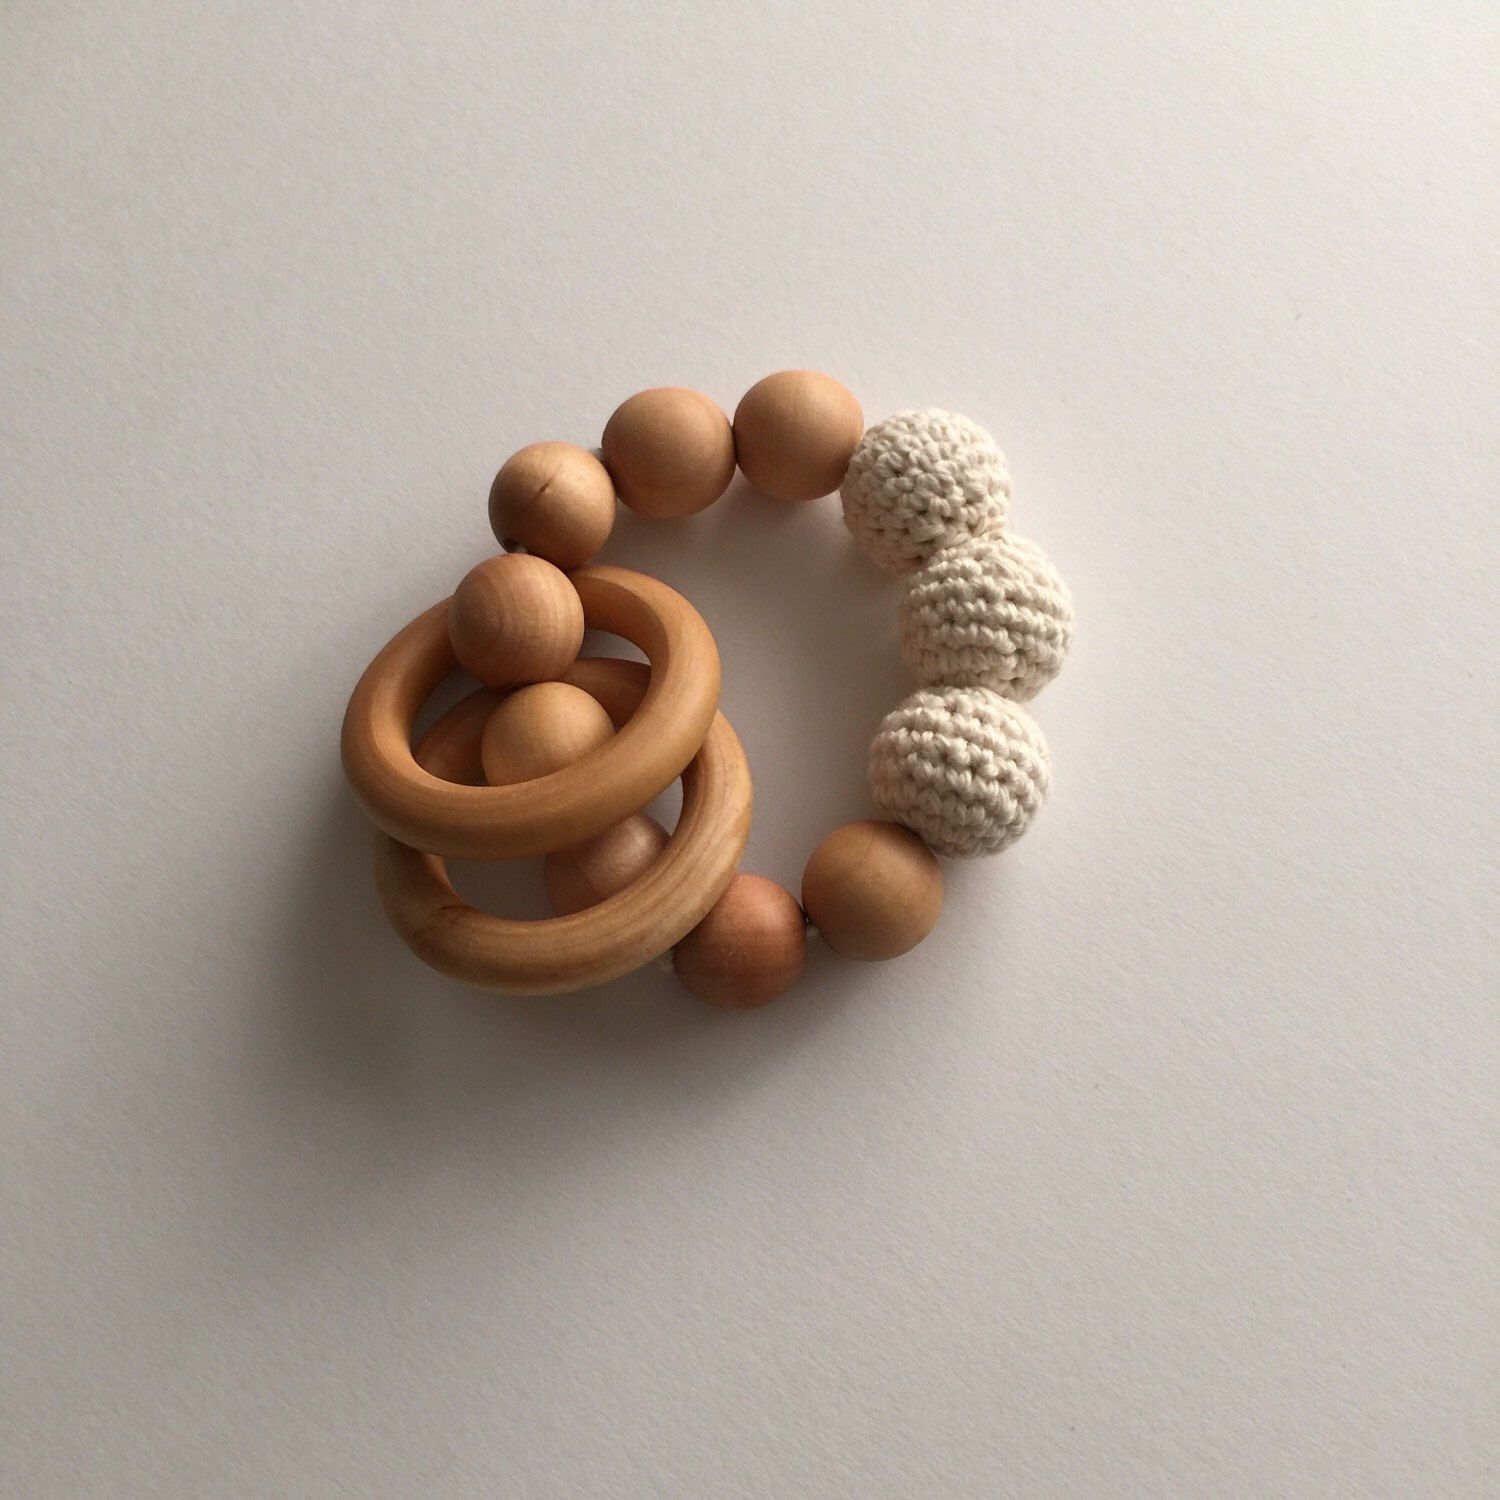 100% Organic Cotton Crocheted Teething Toy by EarthandMirthShop on Etsy https://www.etsy.com/listing/292286415/100-organic-cotton-crocheted-teething